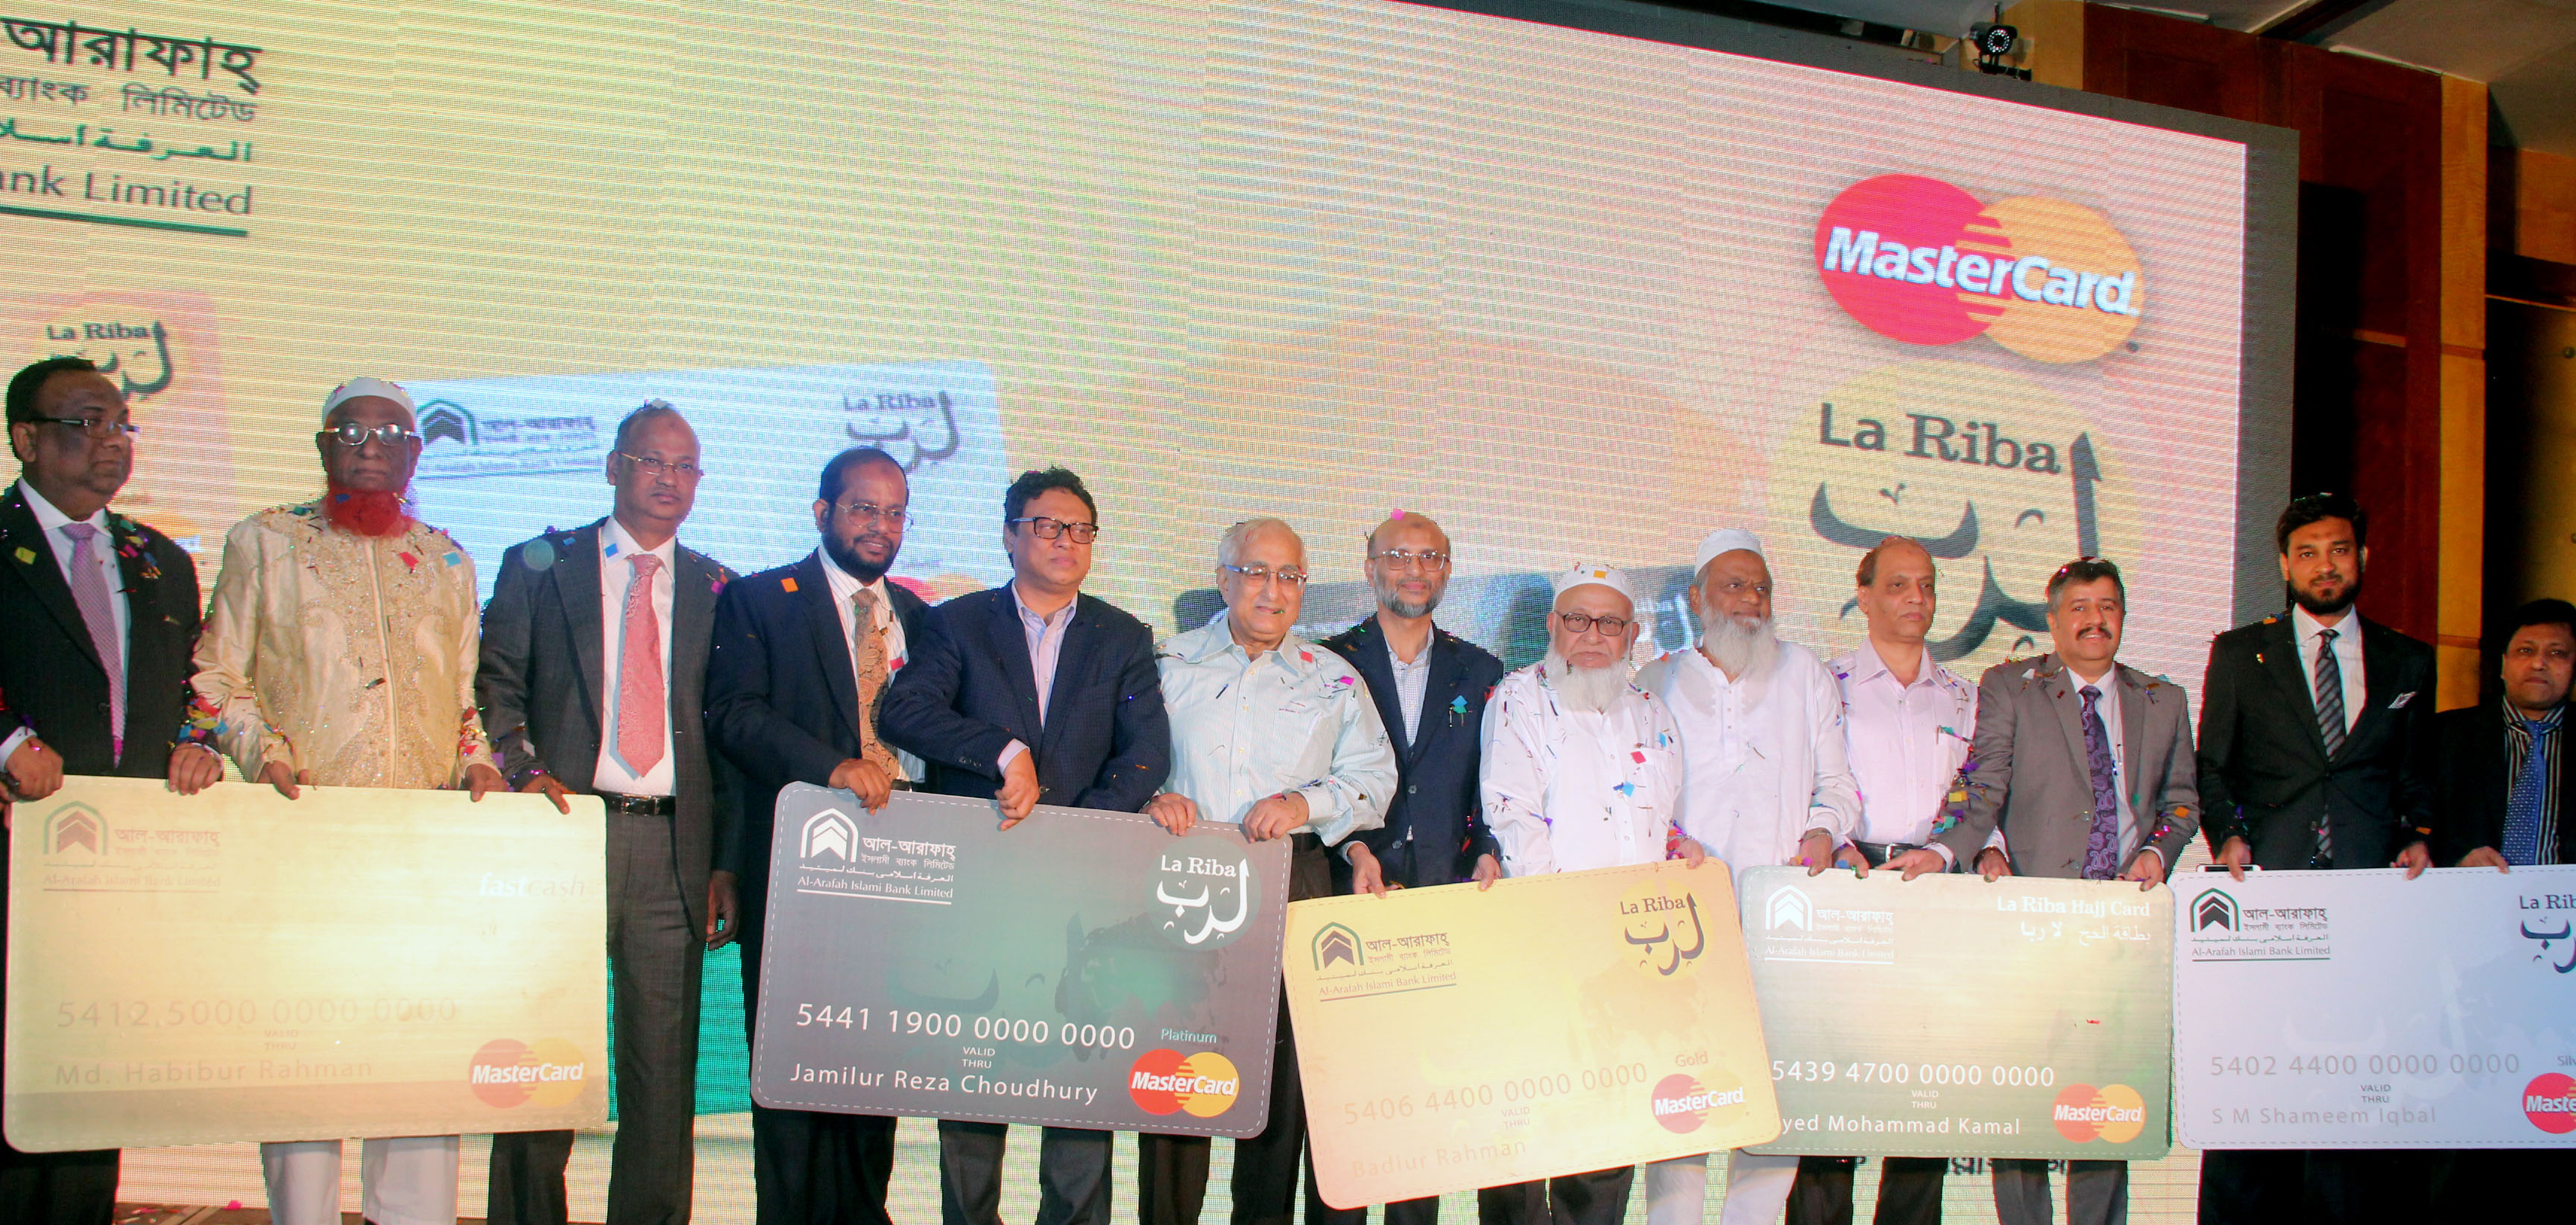 MasterCard Launches First Islamic Card with Al Arafah Islami Bank